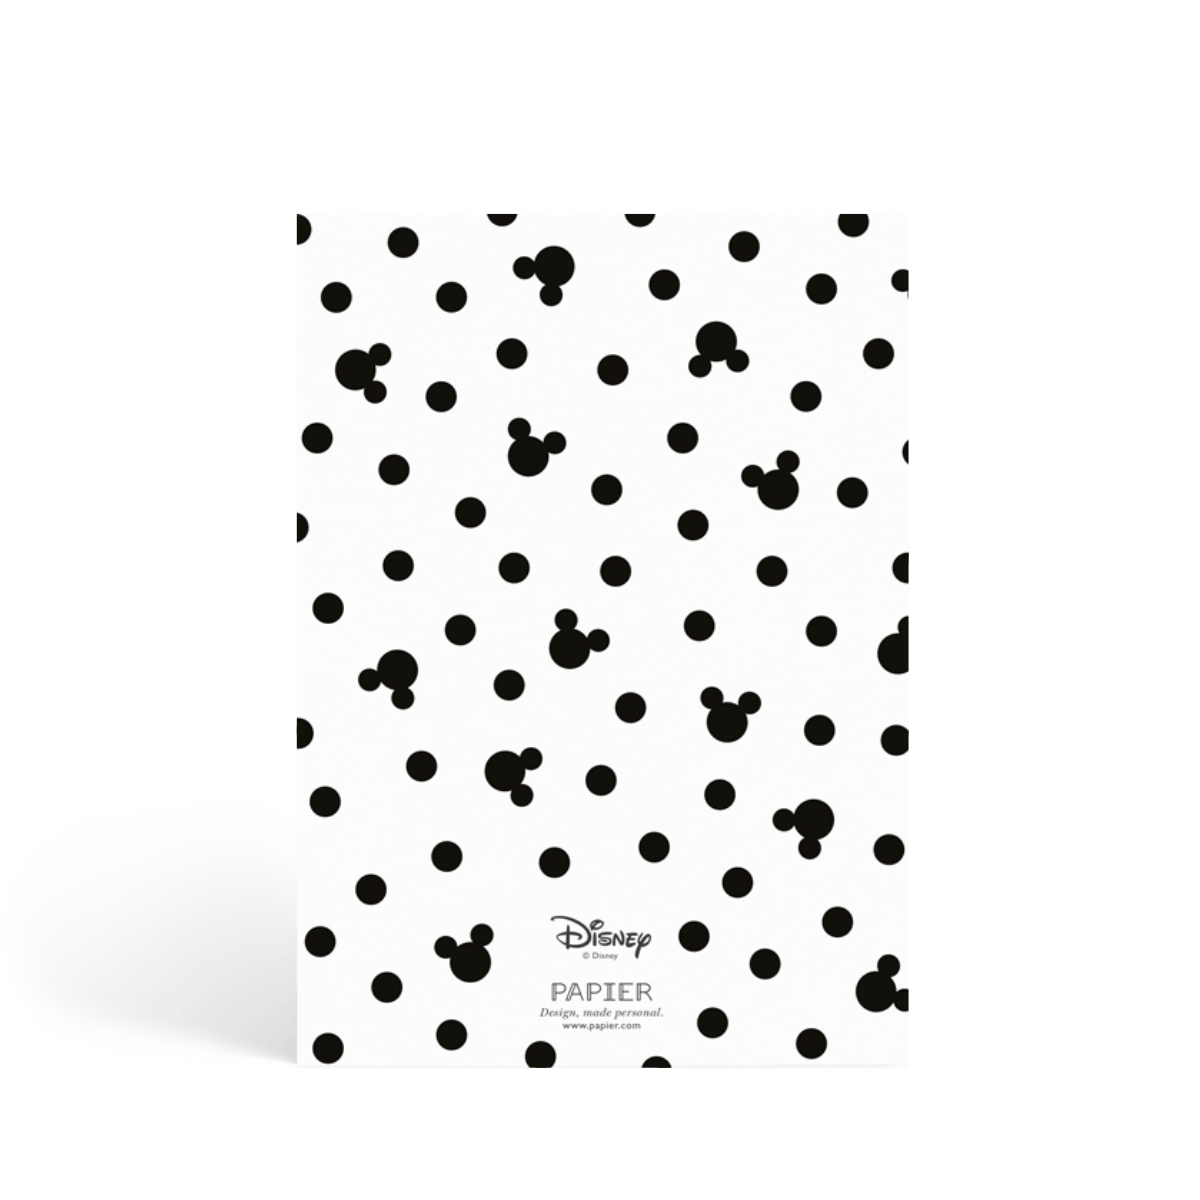 Https%3a%2f%2fwww.papier.com%2fproduct image%2f57321%2f5%2fpolka dot mickey mouse 13769 back 1569451617.png?ixlib=rb 1.1